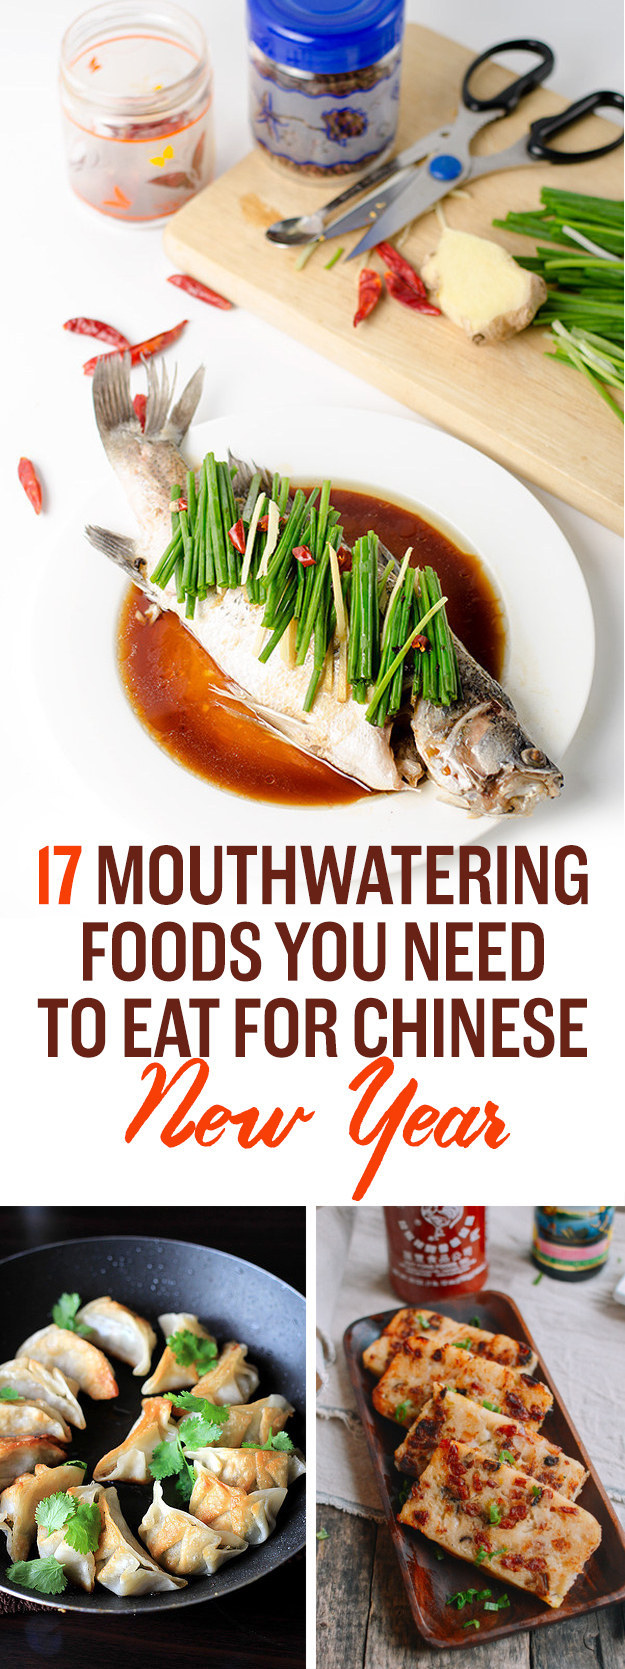 17 Mouthwatering Foods You Need To Eat For Lunar New Year